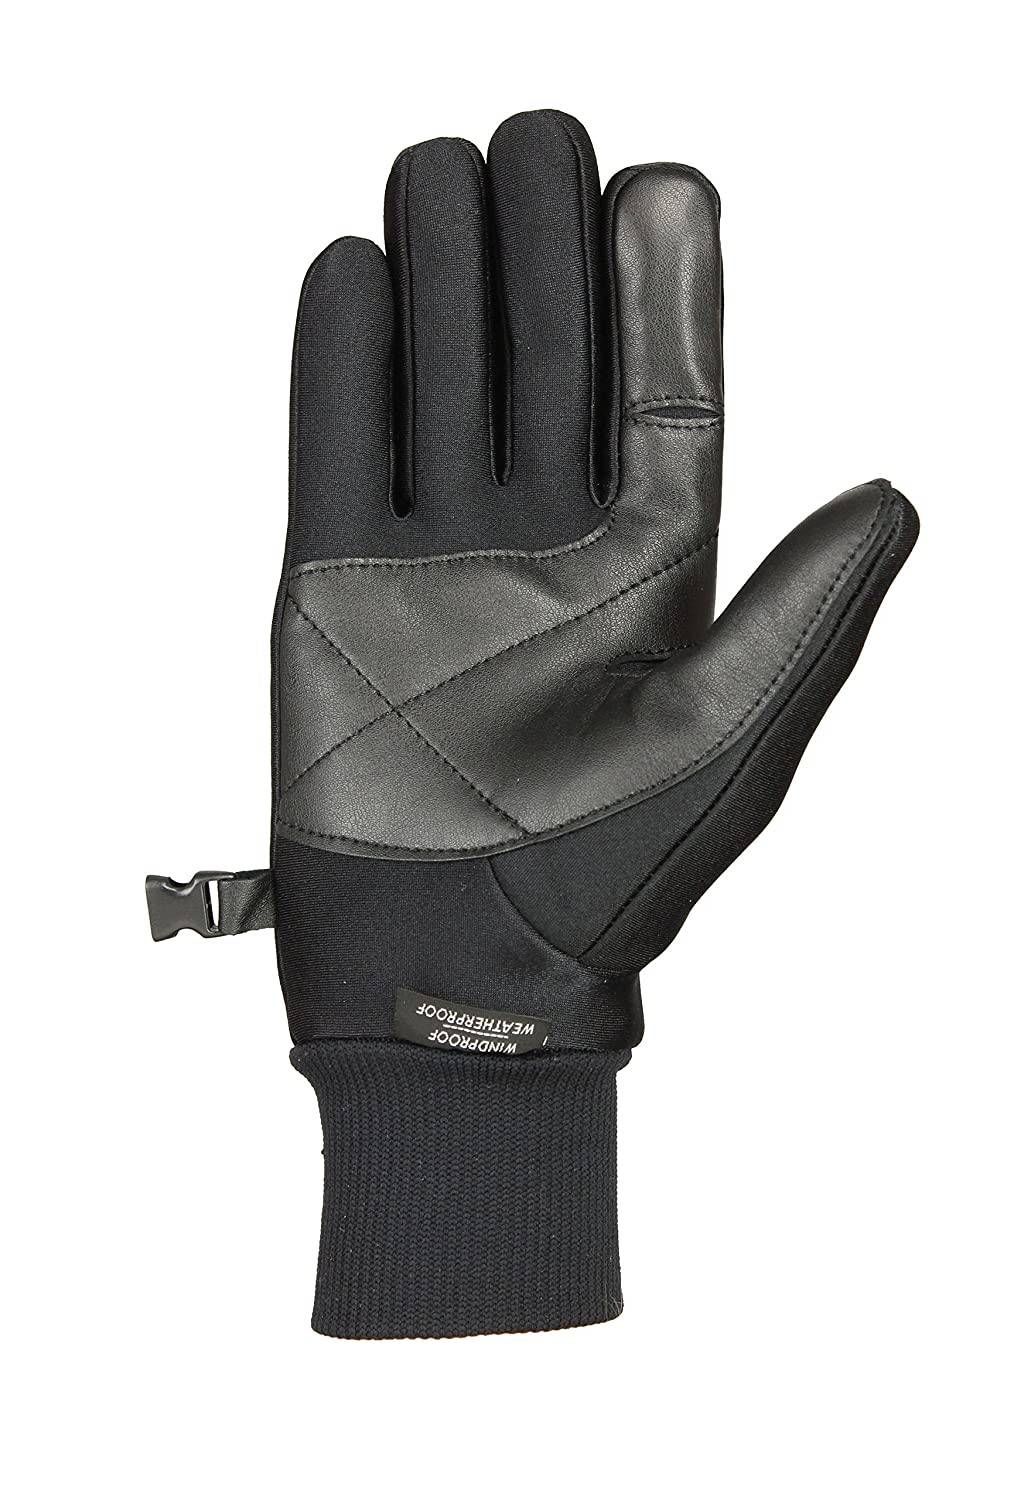 Seirus Innovation 1172 Mens Lightweight Form Fit All Weather Polartec Glove with Soundtouch Touch Screen Technology TOP SELLER